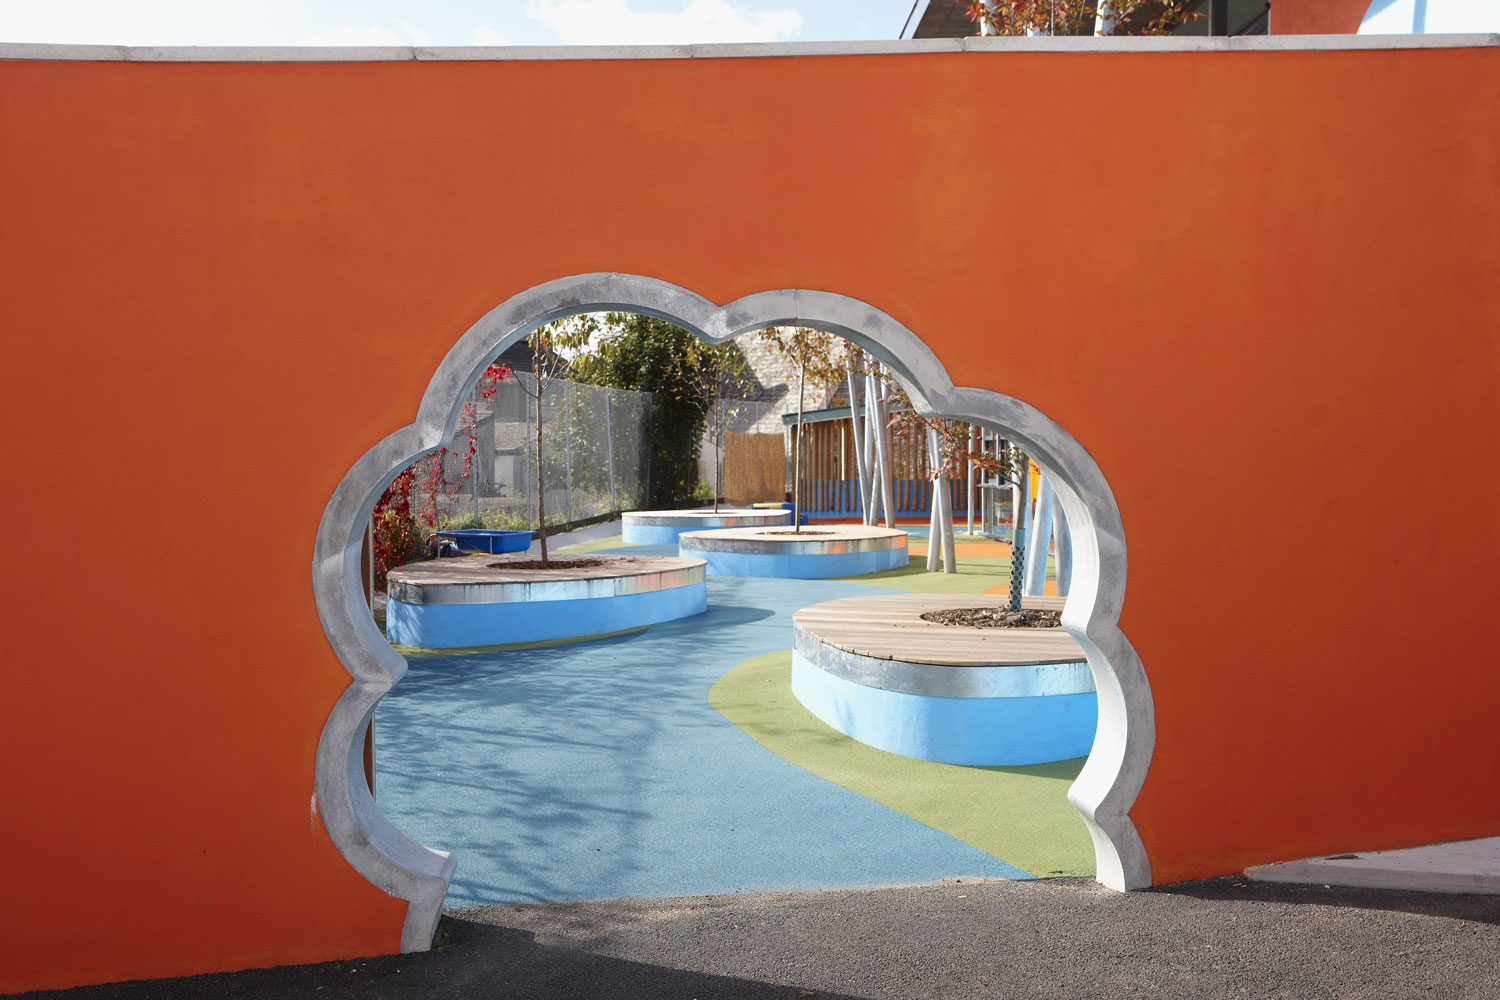 Ellacombe School Torquay School Gate | Architectural Photographers UK